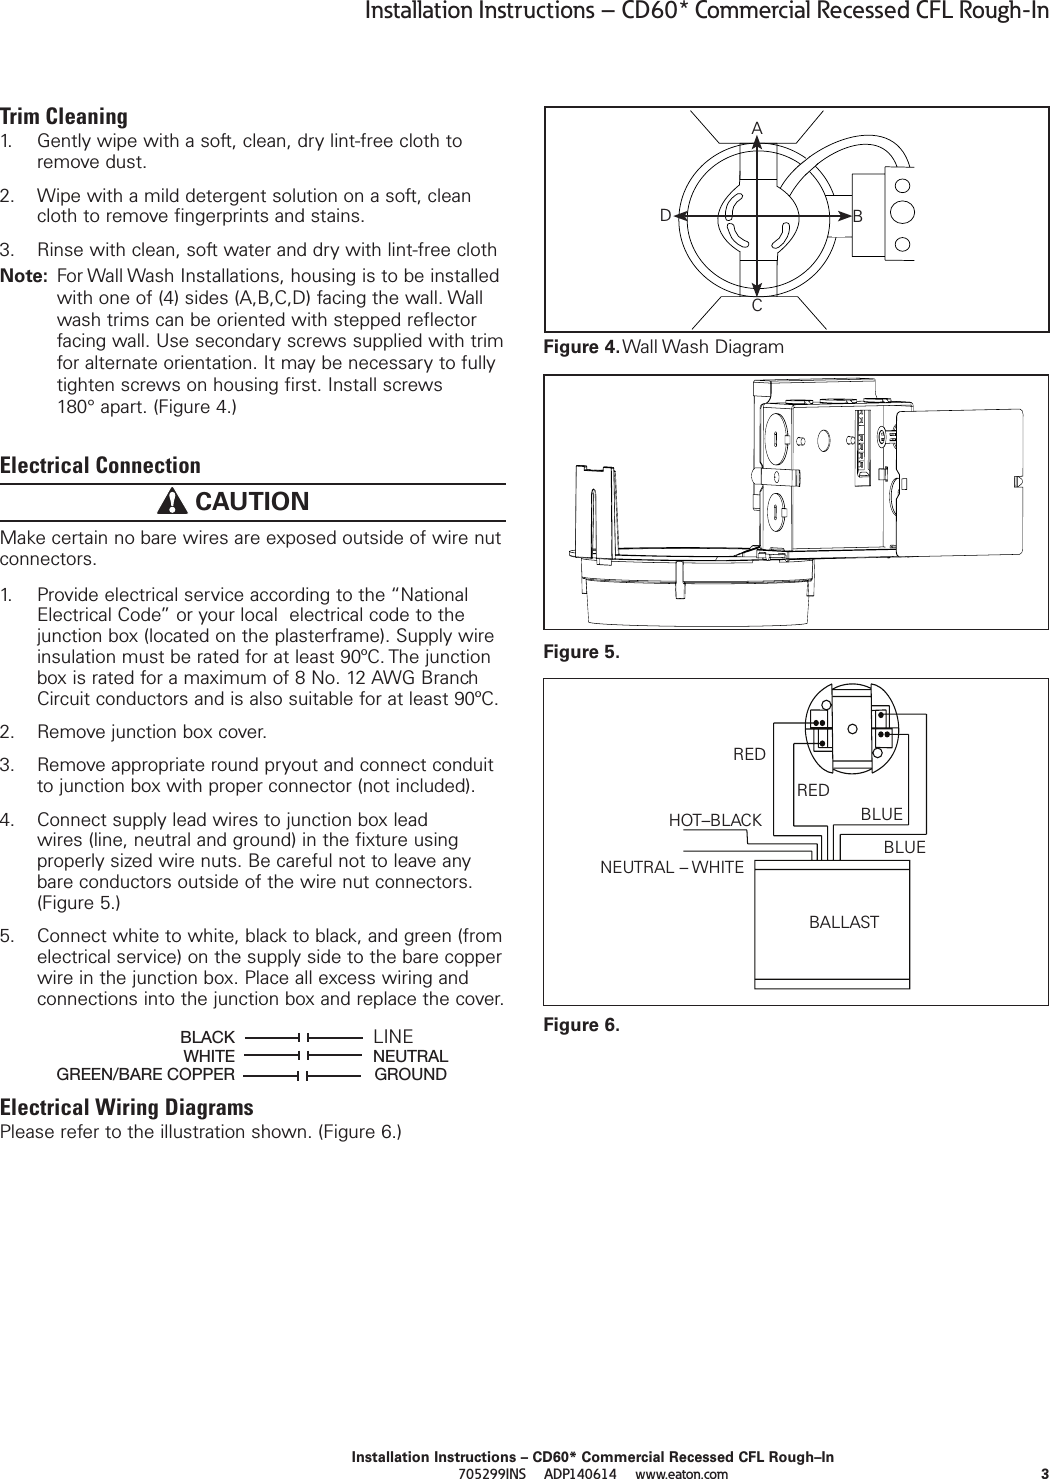 Portfolio Cd60 Commercial Recessed Cfl Rough In Installation Diions Wiring Diagram Page 3 Of 10 Instructions Directions